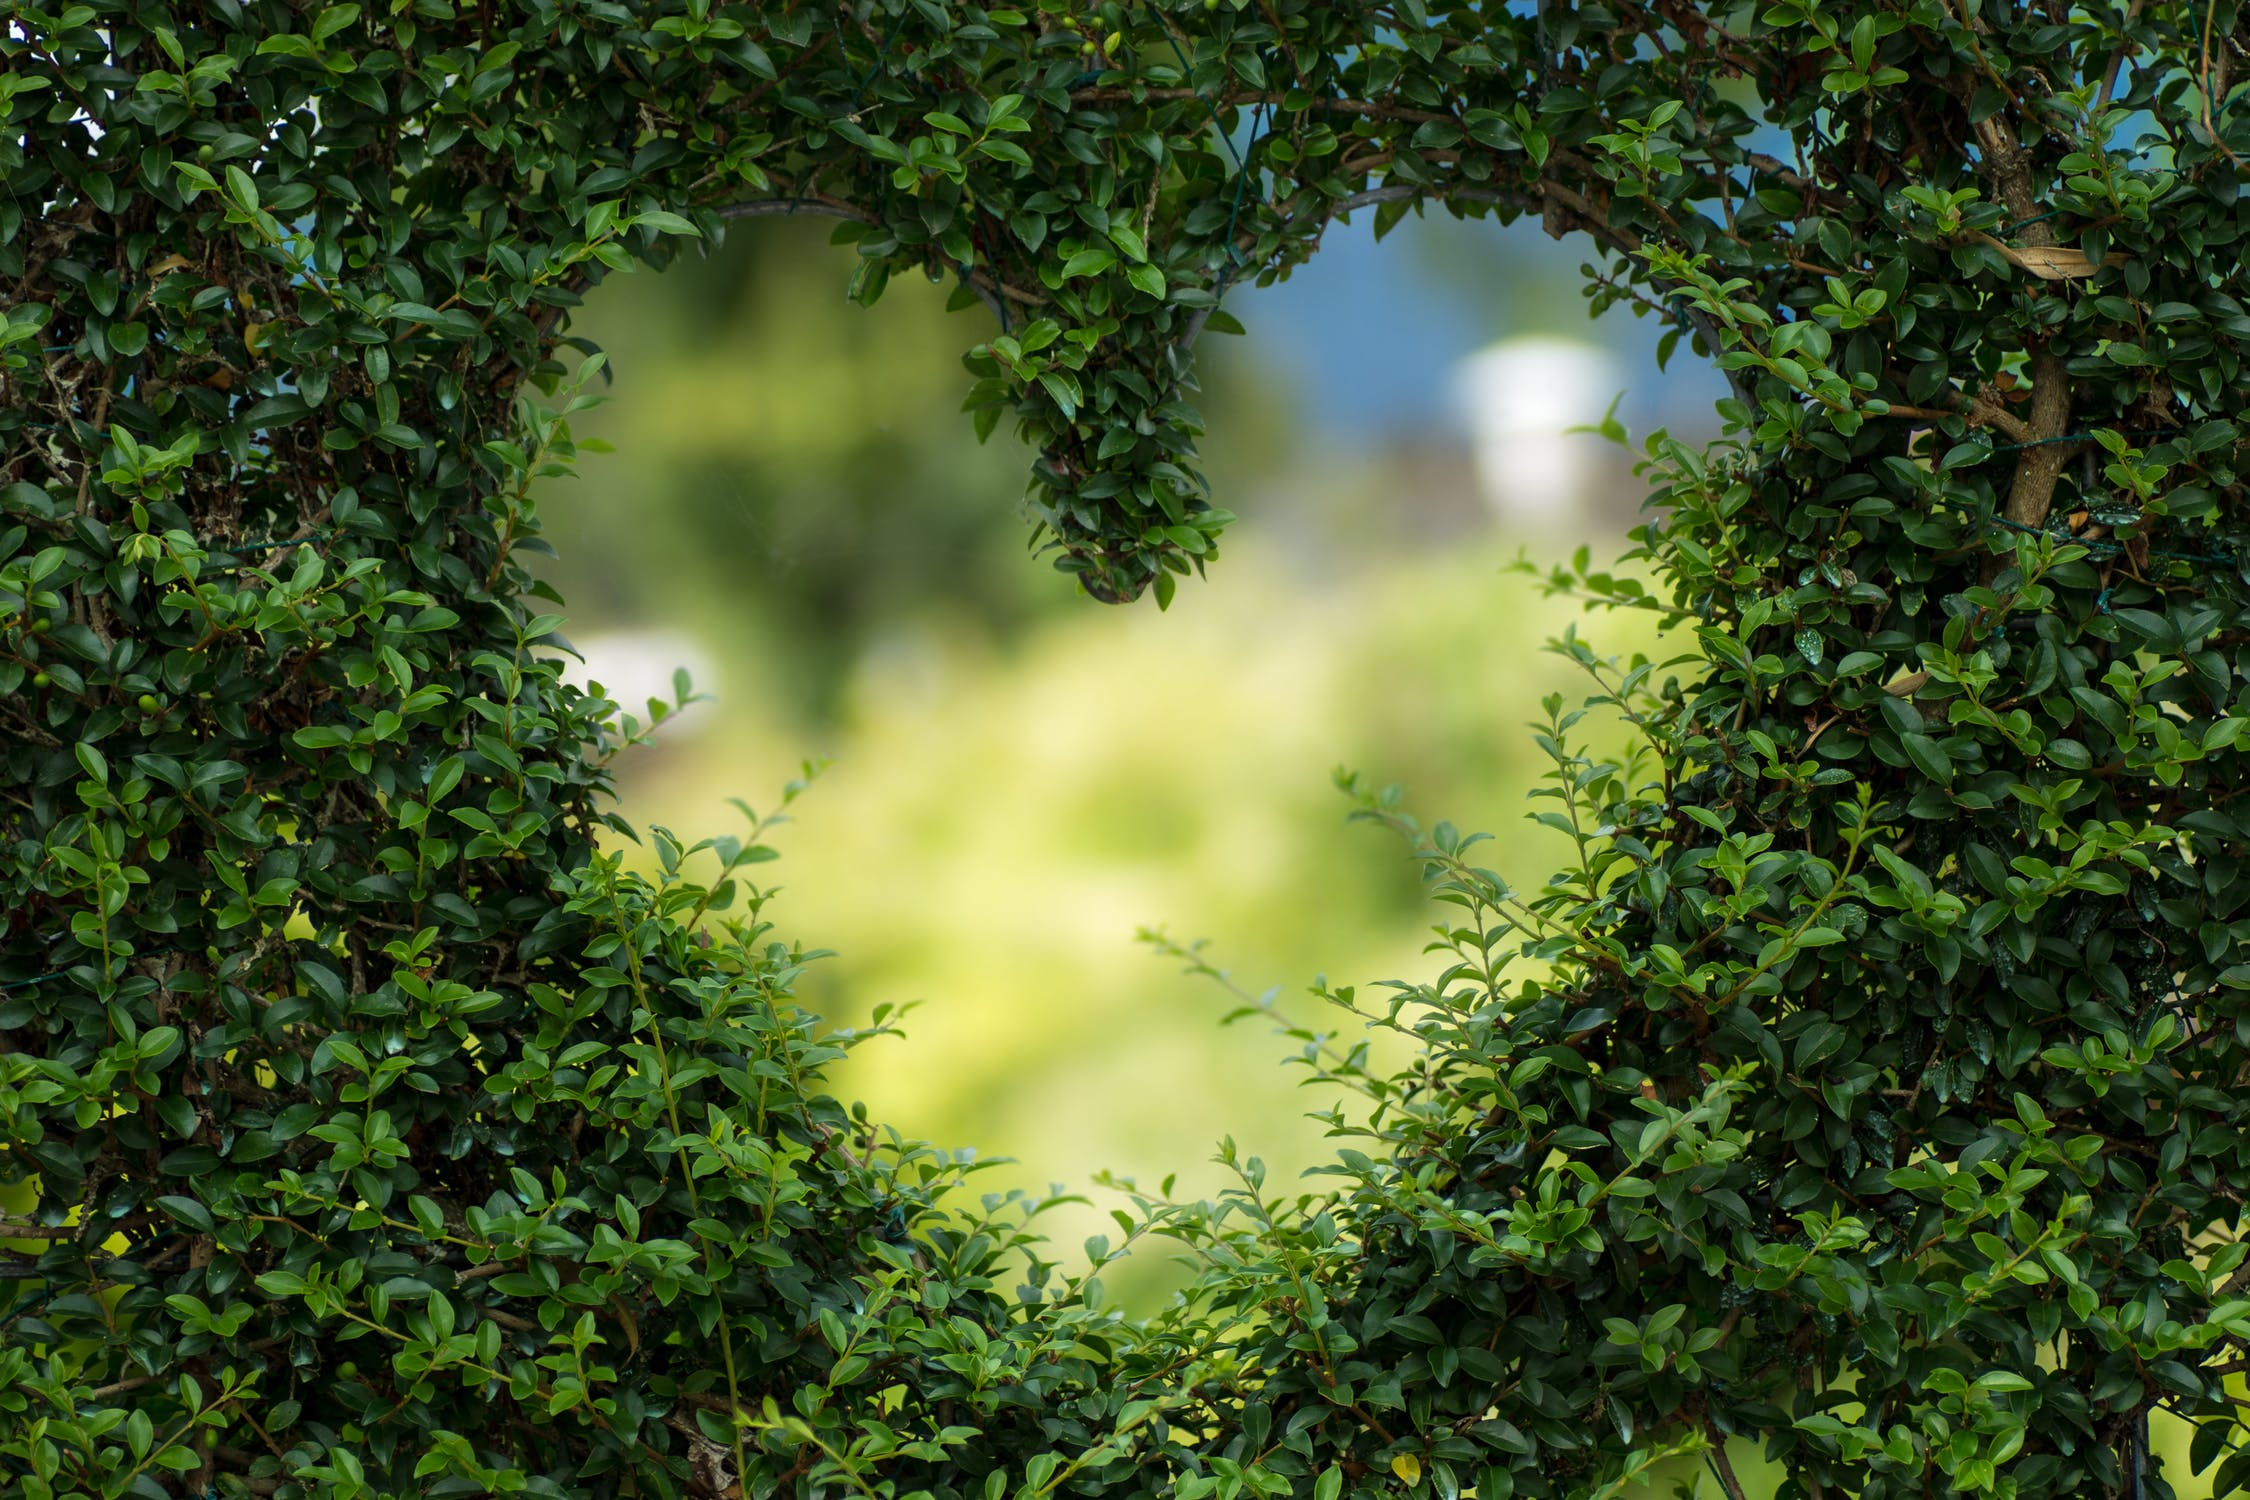 green garden hedge with a heart shaped cutout